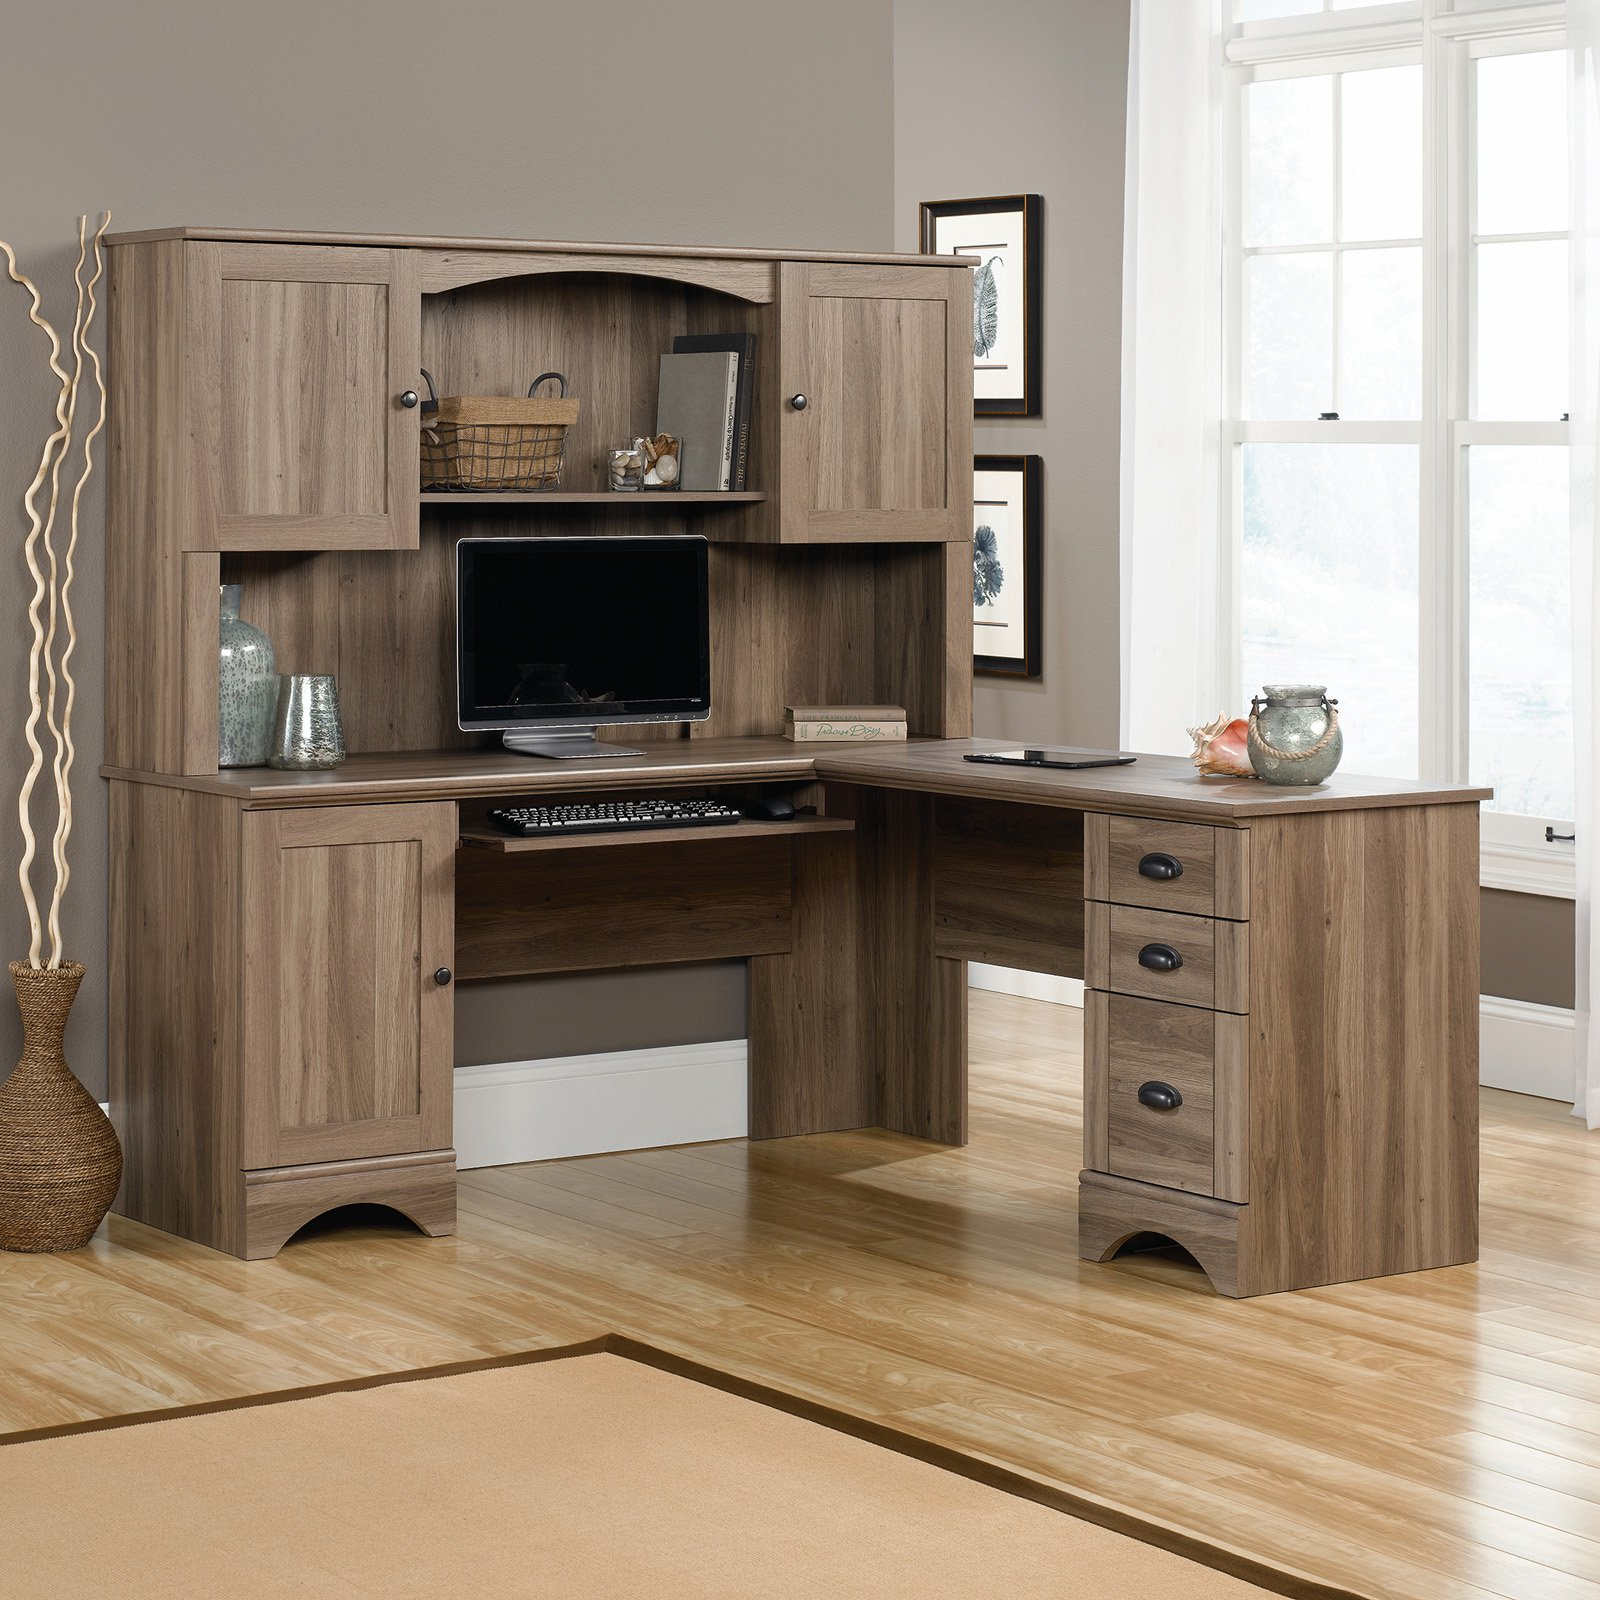 Sauder Harbor View L-Shaped Computer Desk with Optional Hutch